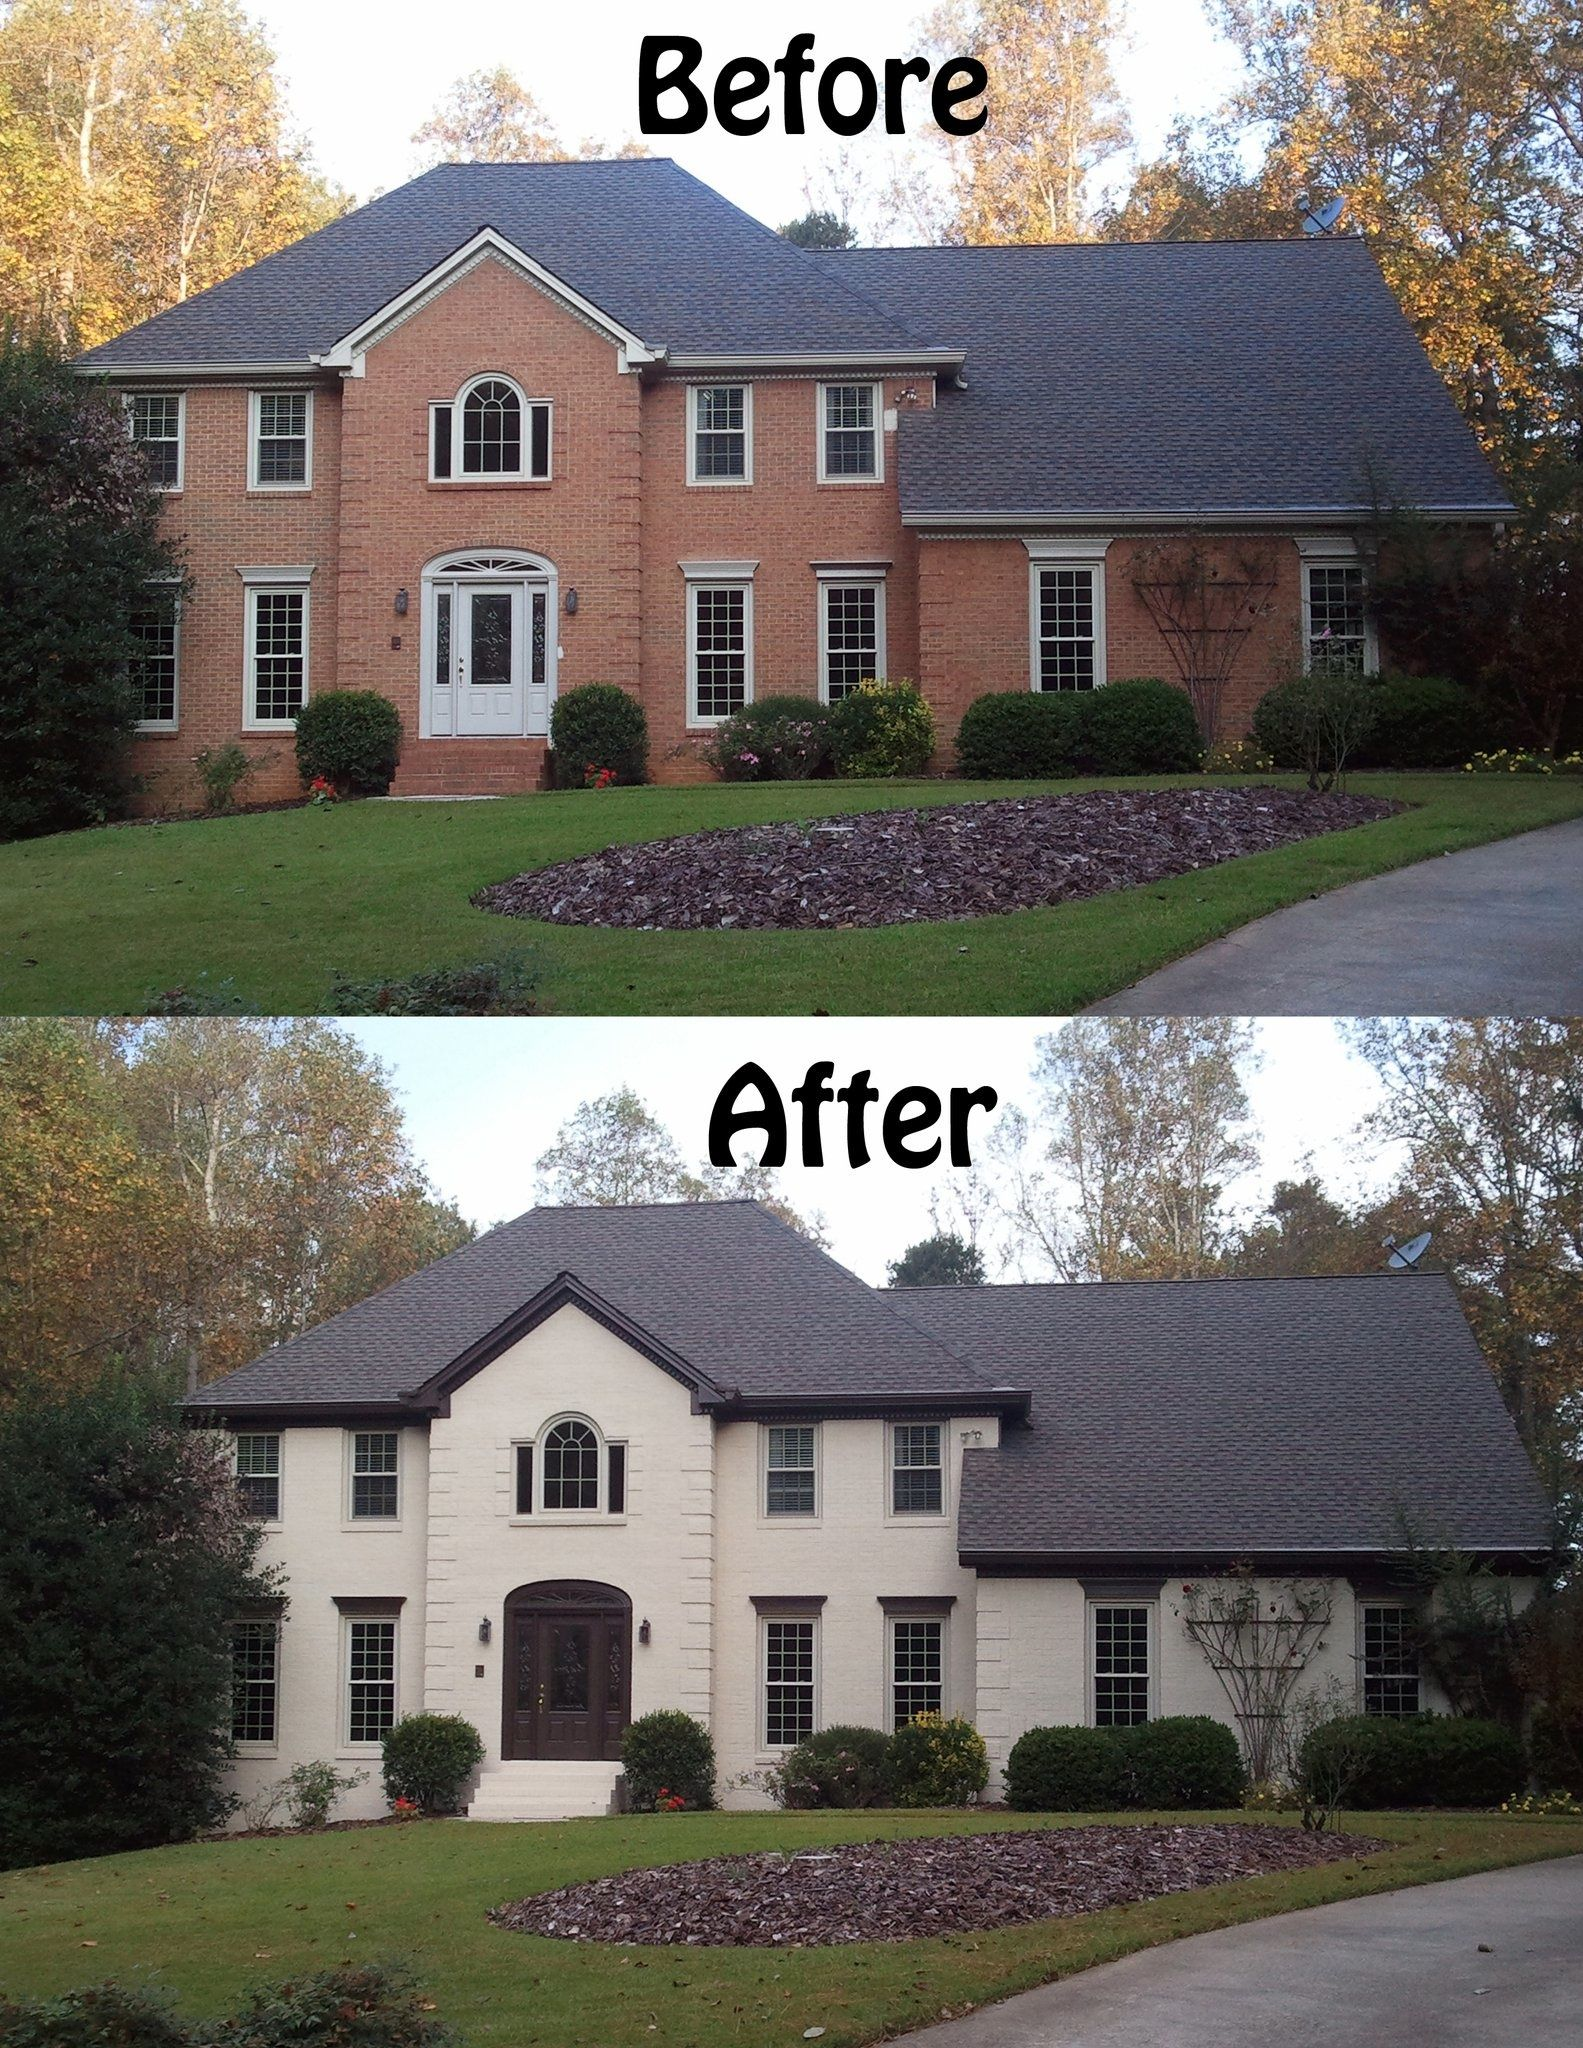 Make trim blend in with roof colorlove painted brickso want